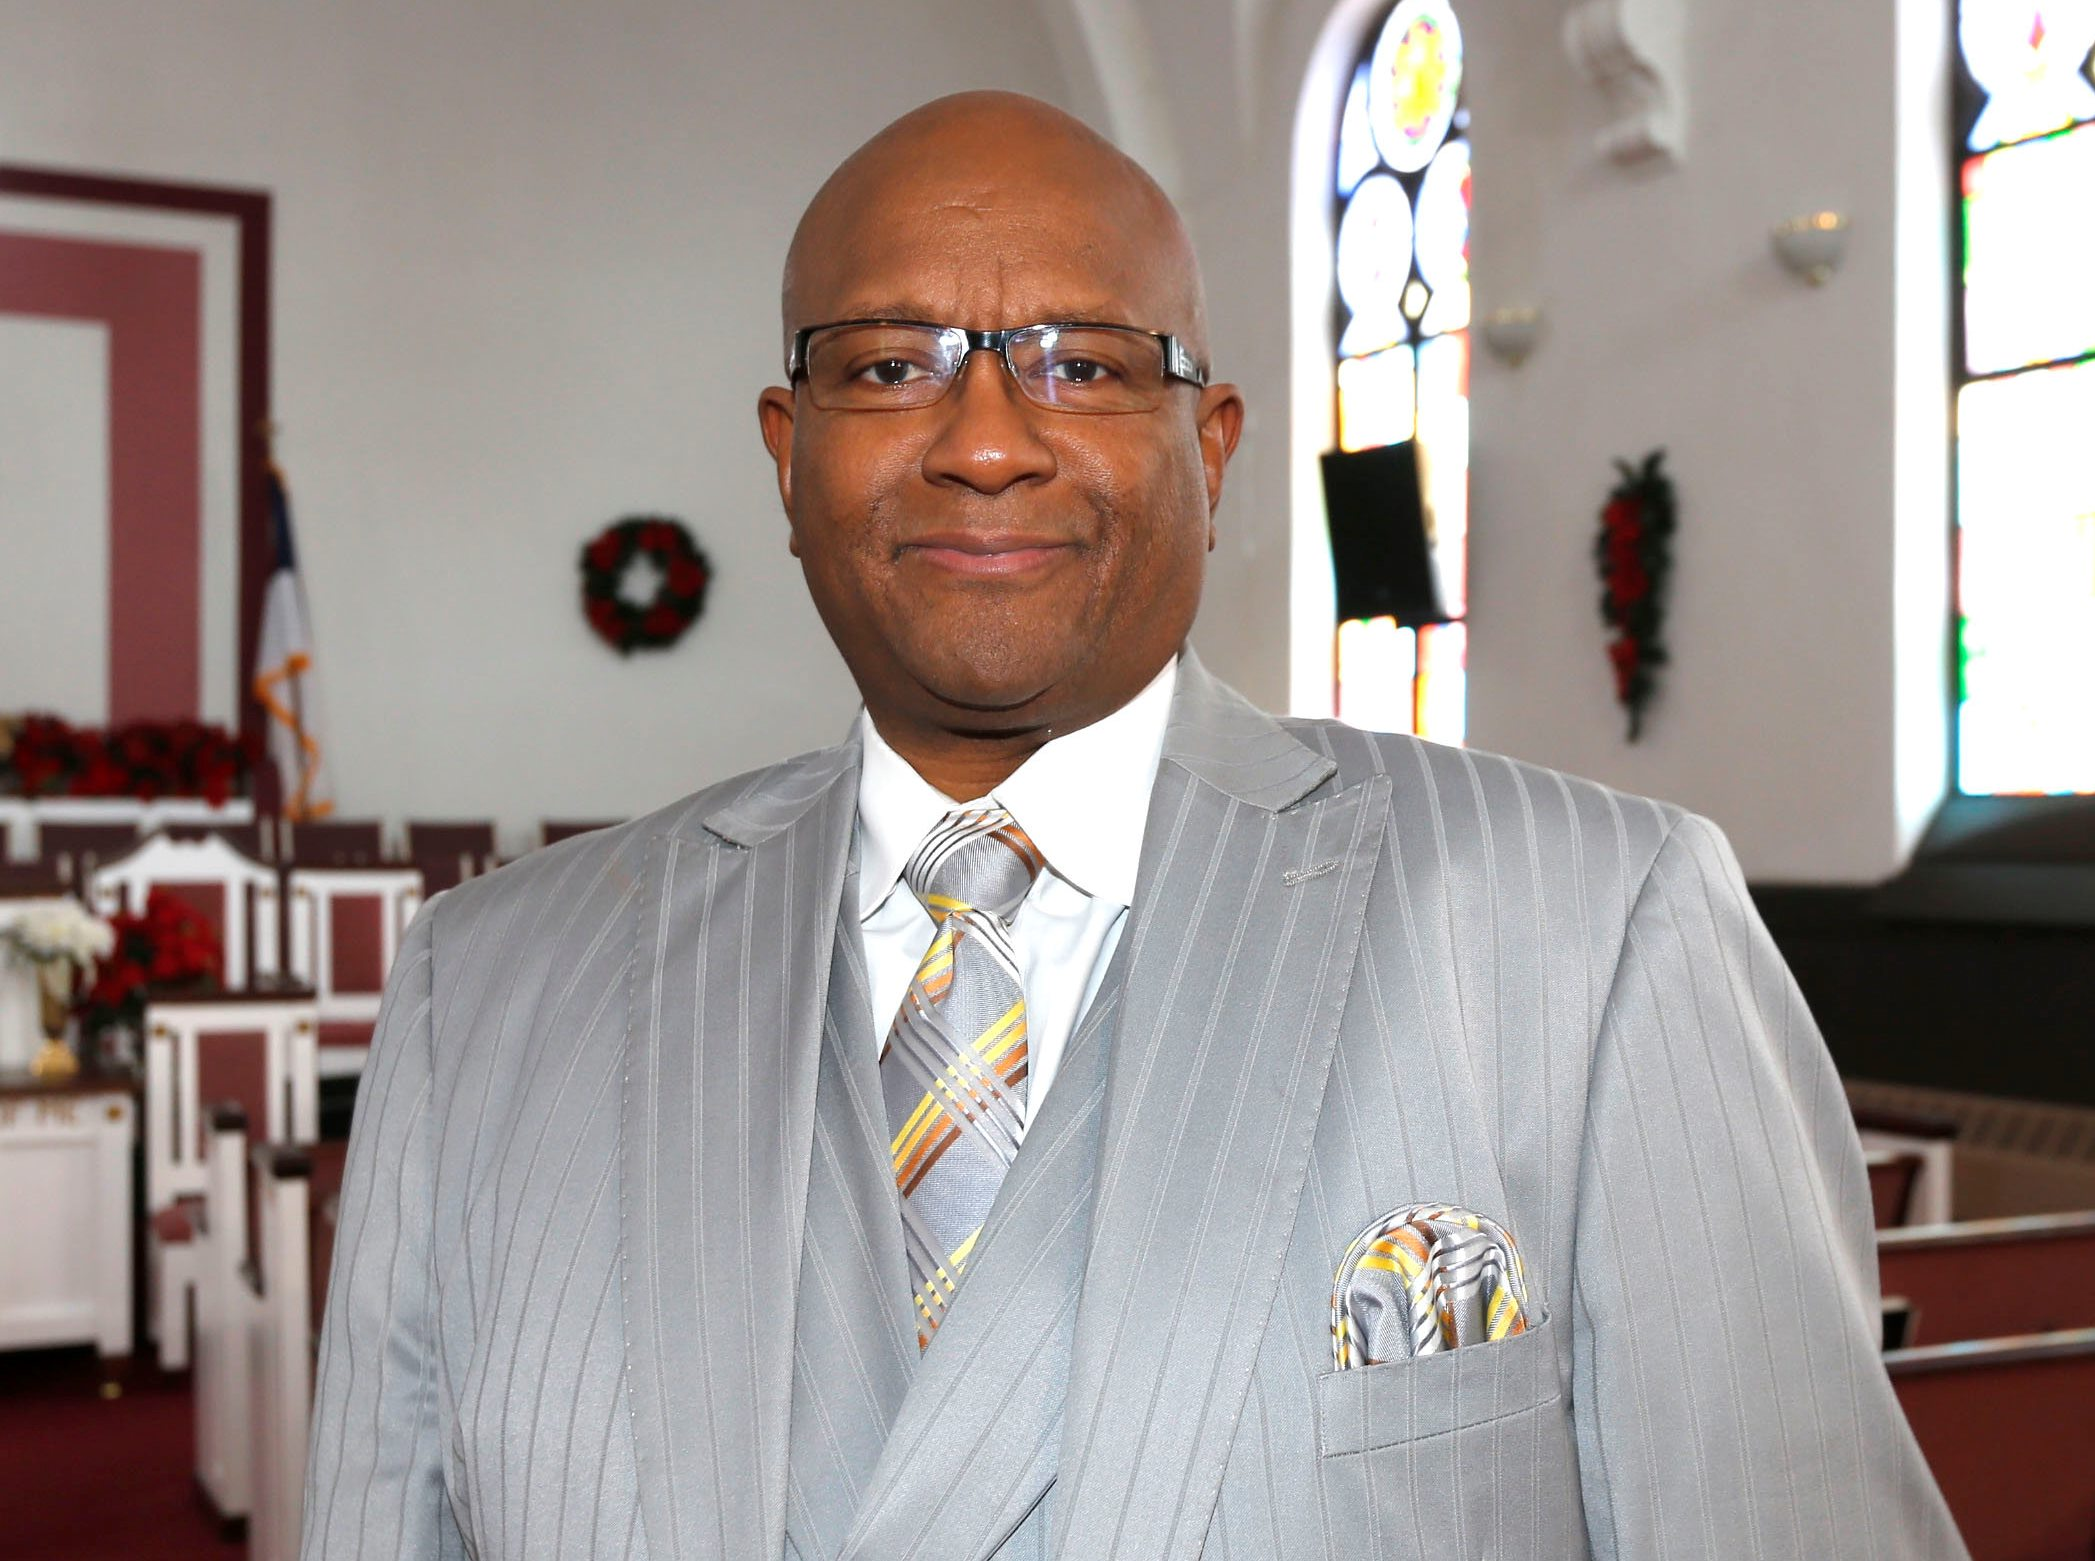 Rev. Mark E. Blue, pastor of Second Baptist Church in Lackawanna, is the new president of the Buffalo Branch of the NAACP. (Robert Kirkham/Buffalo News)